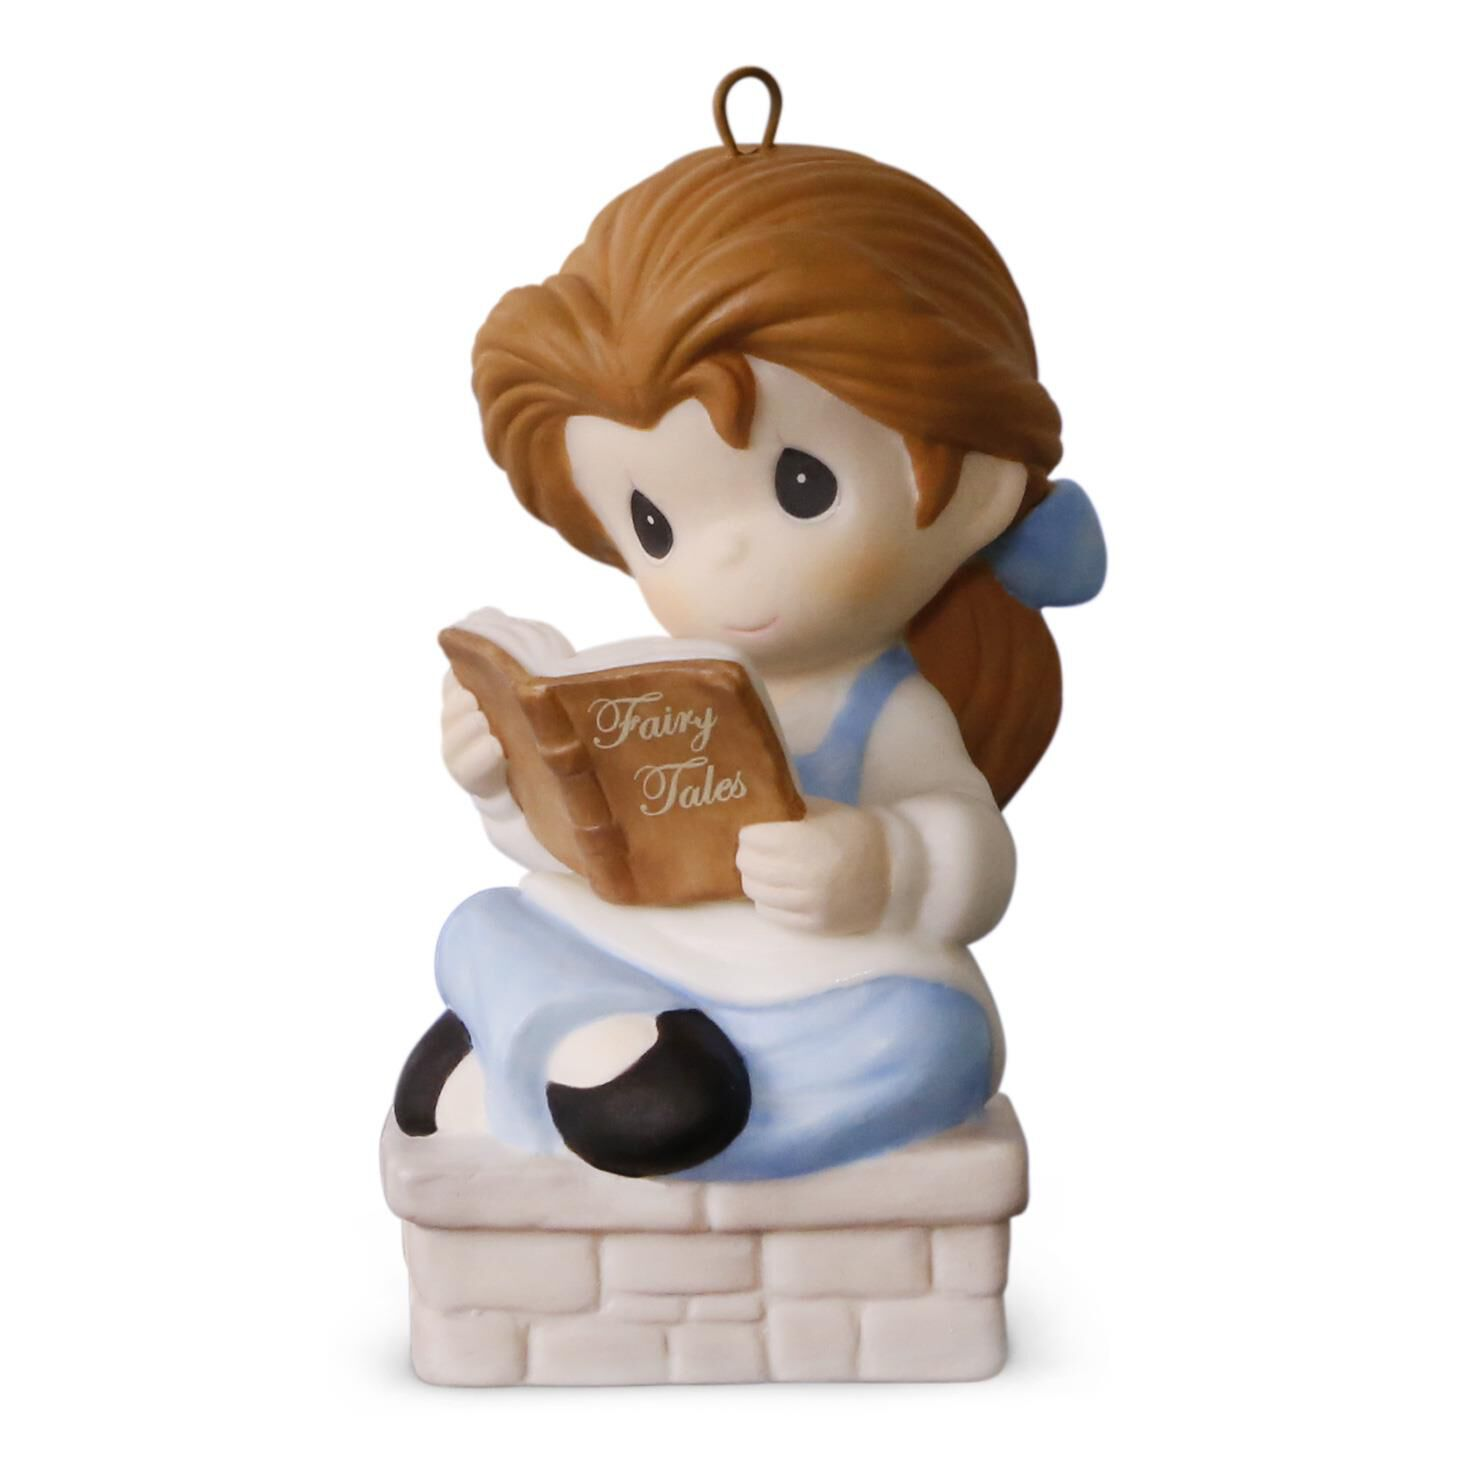 Karate ornament - Precious Moments Belle Of Disney Beauty And The Beast Ornament Keepsake Ornaments Hallmark